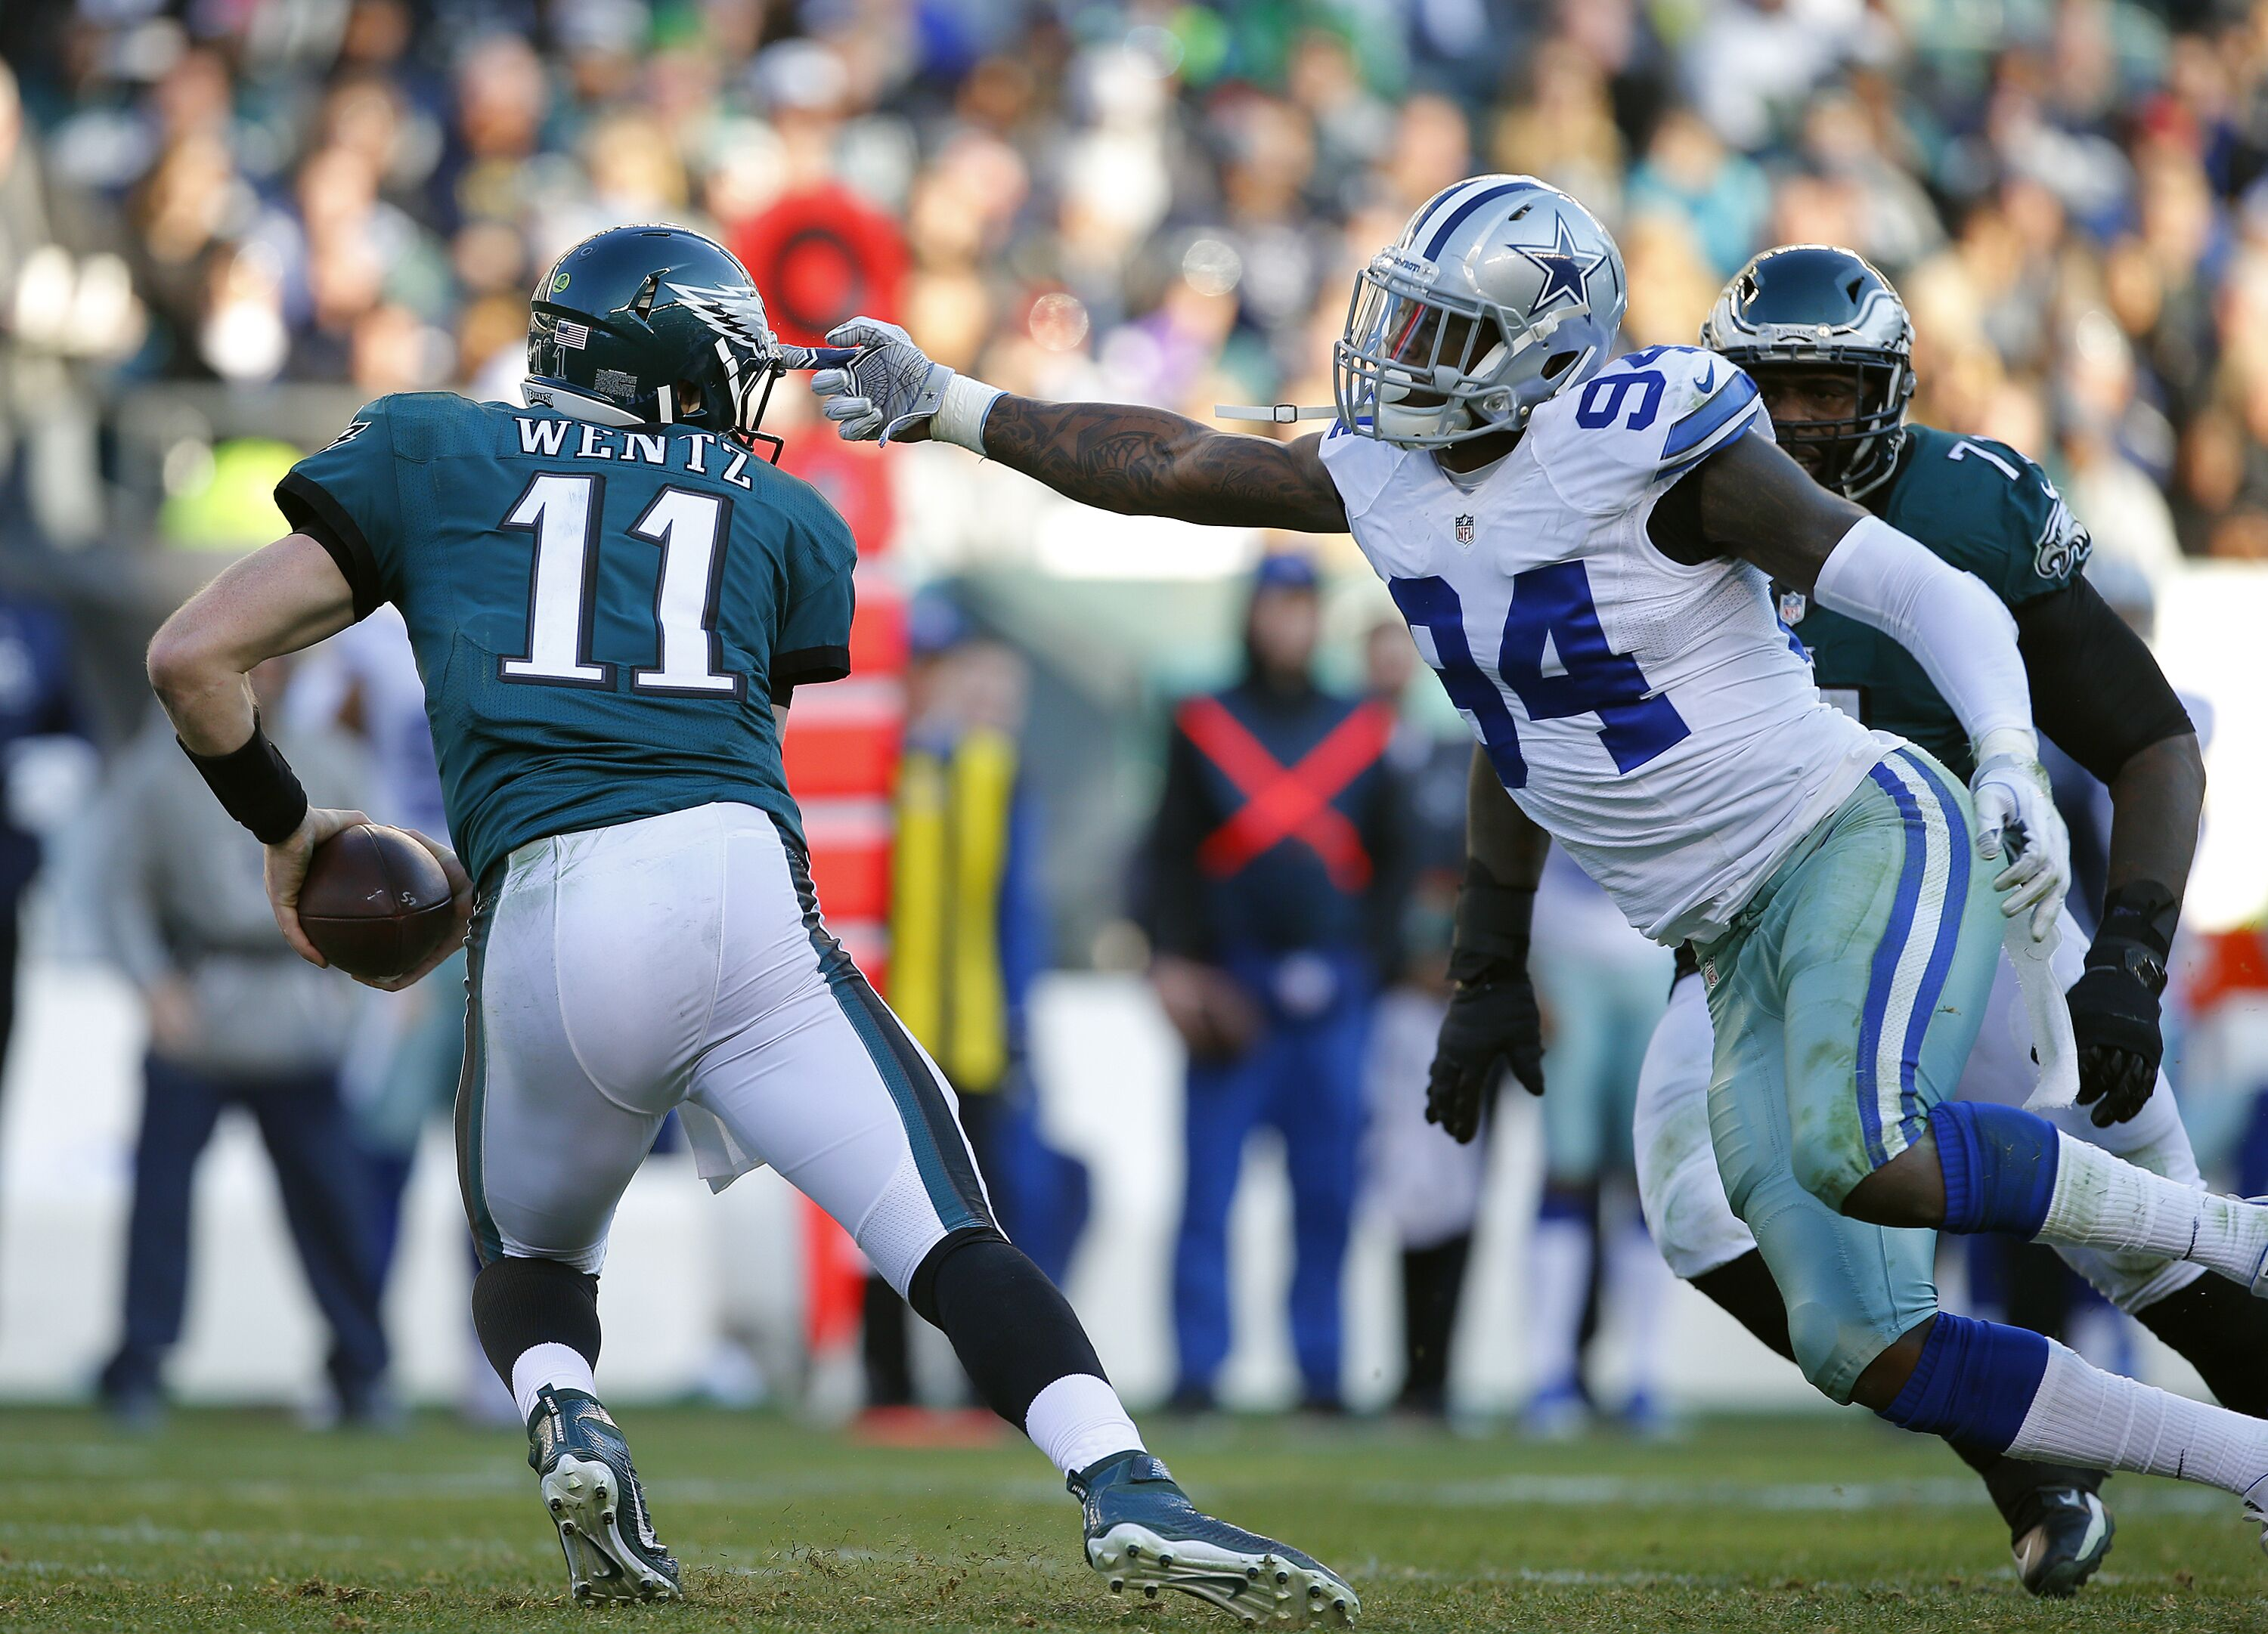 630771386-dallas-cowboys-v-philadelphia-eagles.jpg